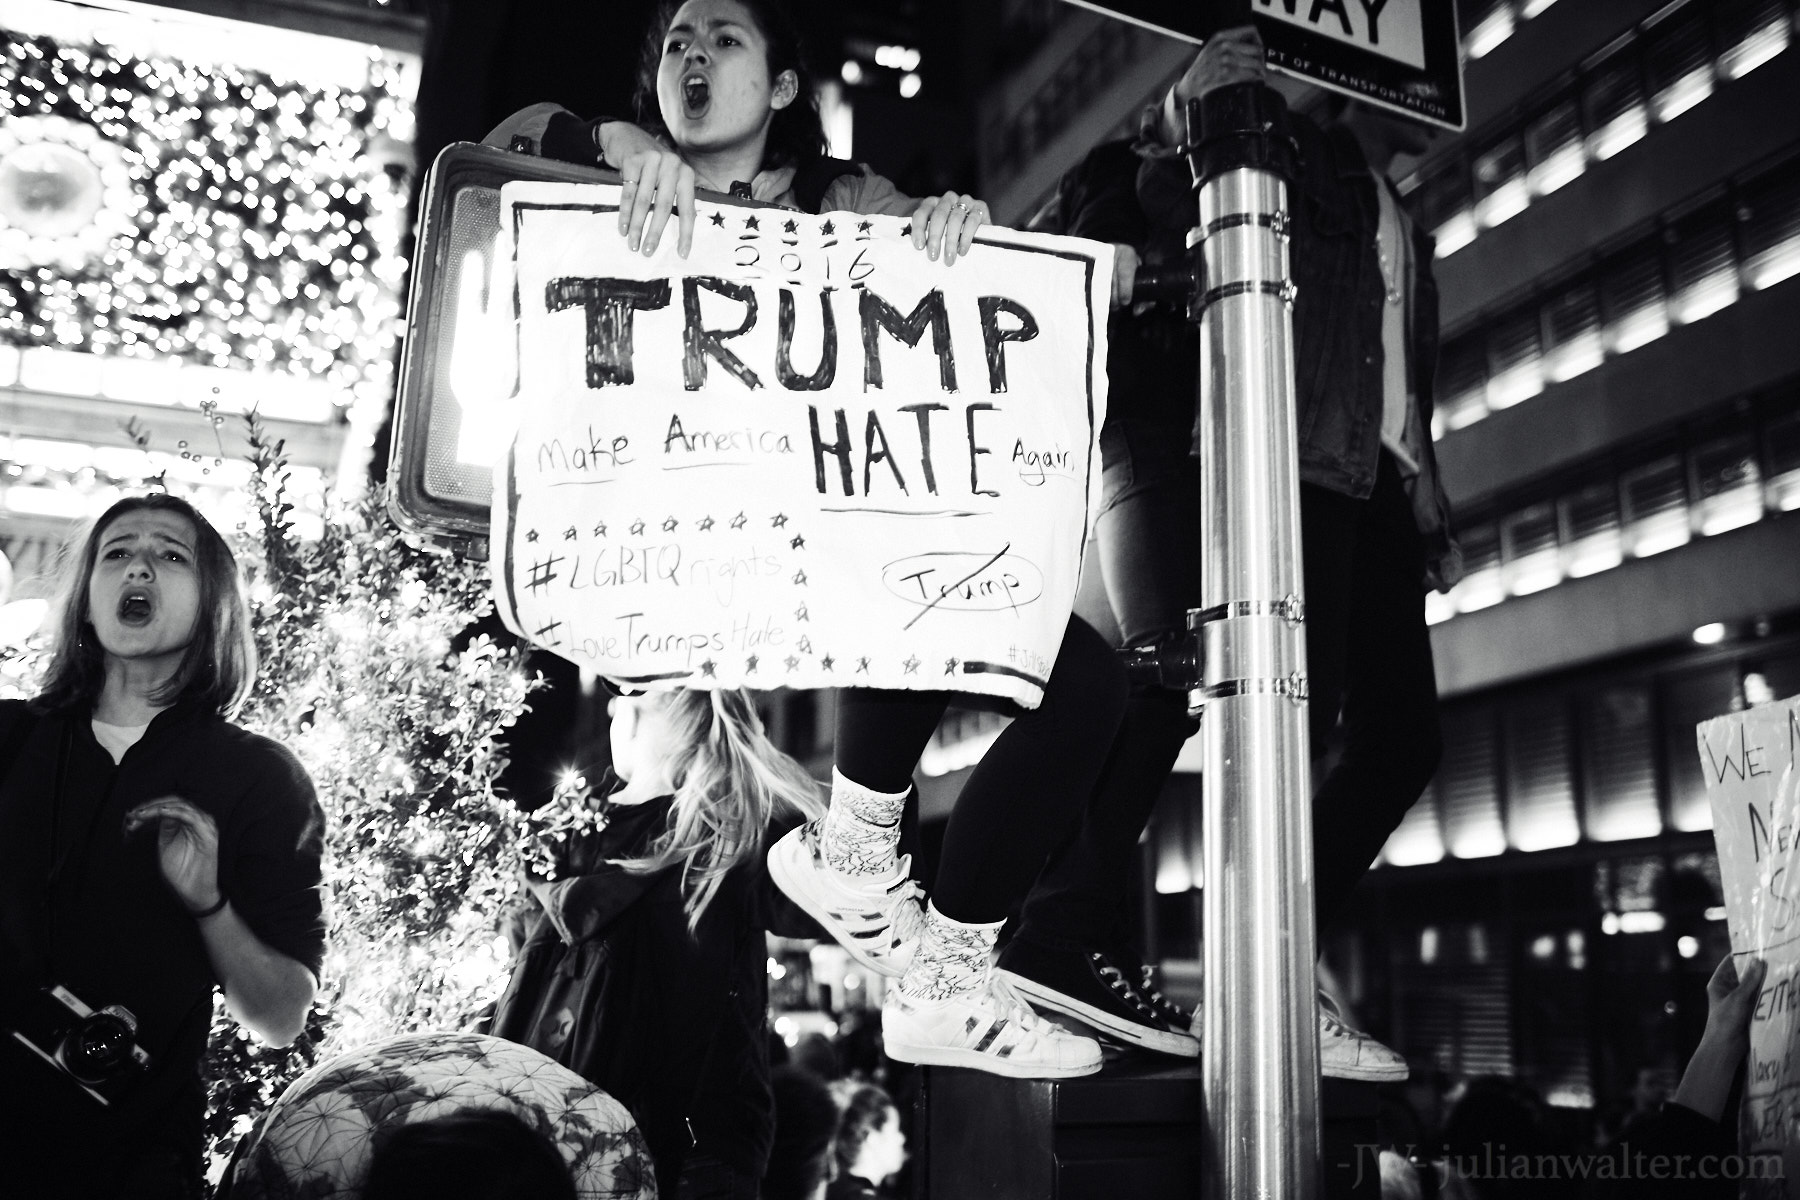 Julian Walter Photography - Donald Trump Election Protest